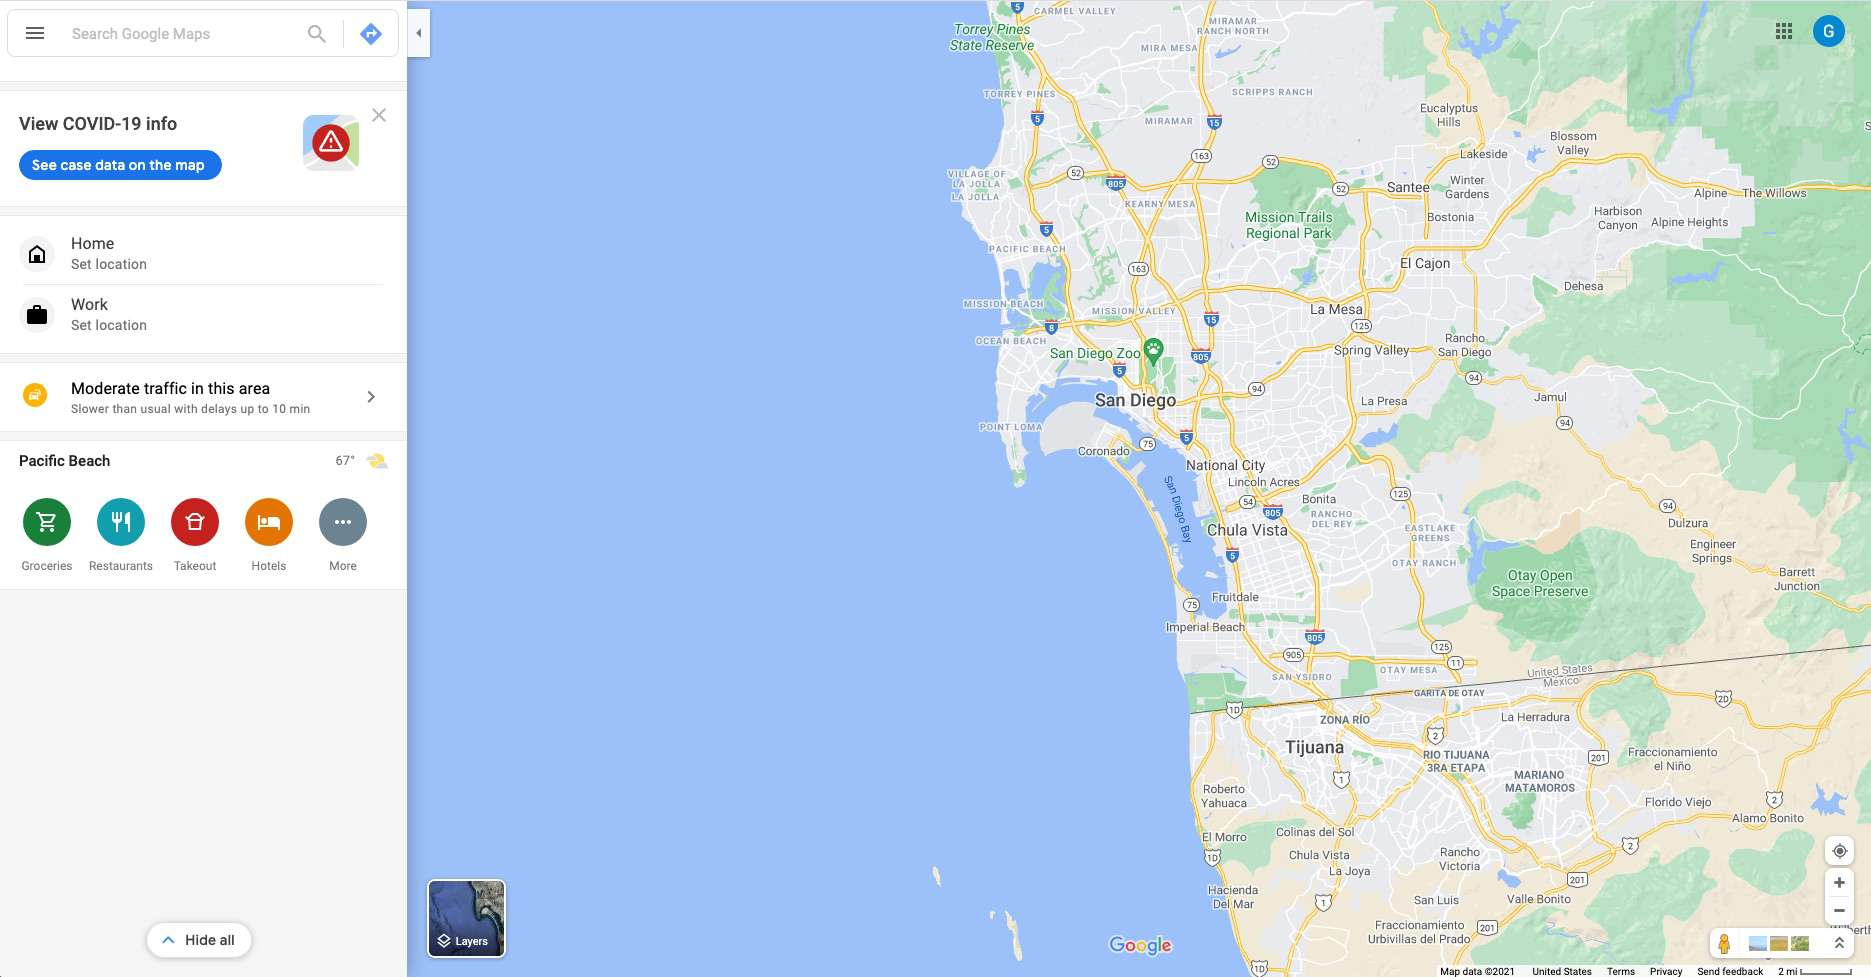 Google Maps open in a web browser